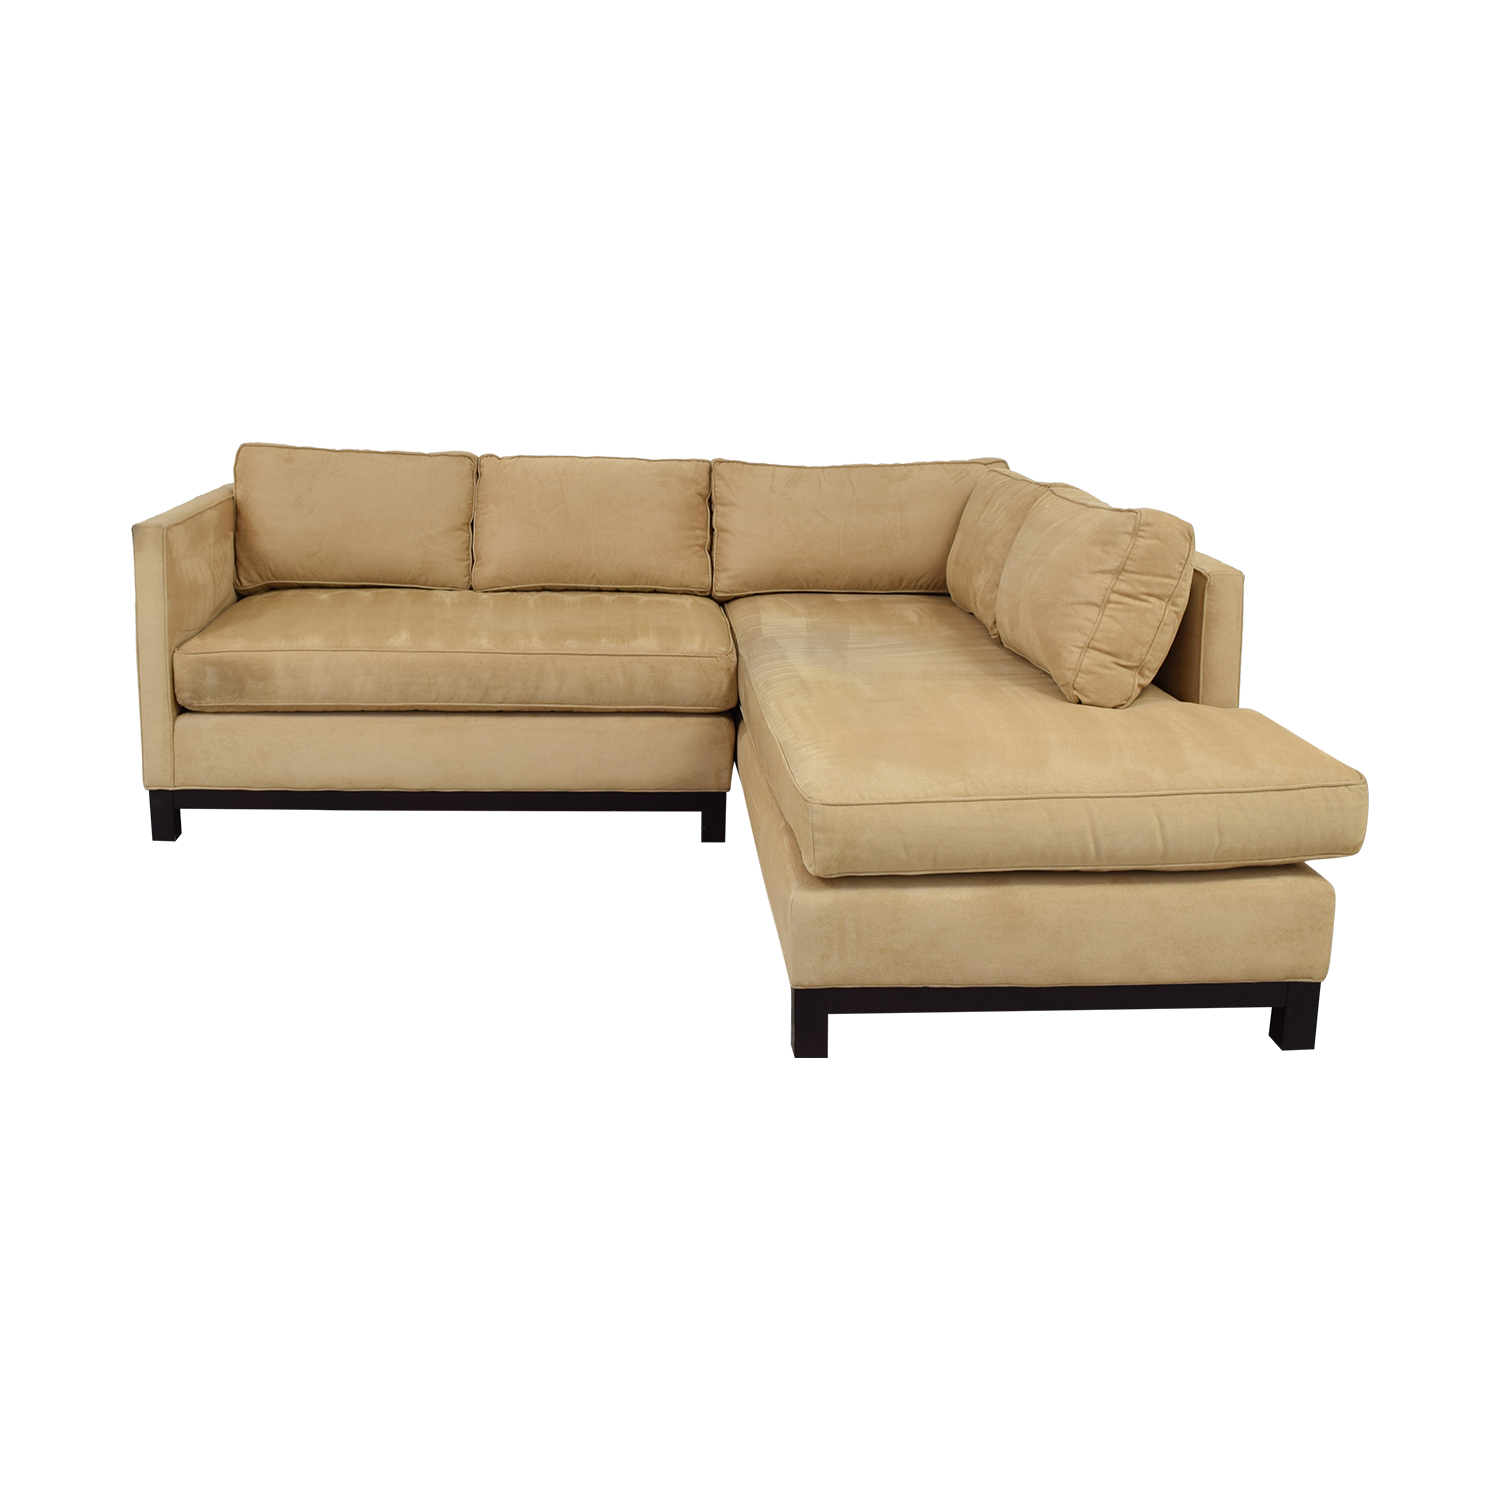 Mitchell Gold + Bob Williams Mitchell Gold + Bob Williams Clifton Honey Suede Sectional price